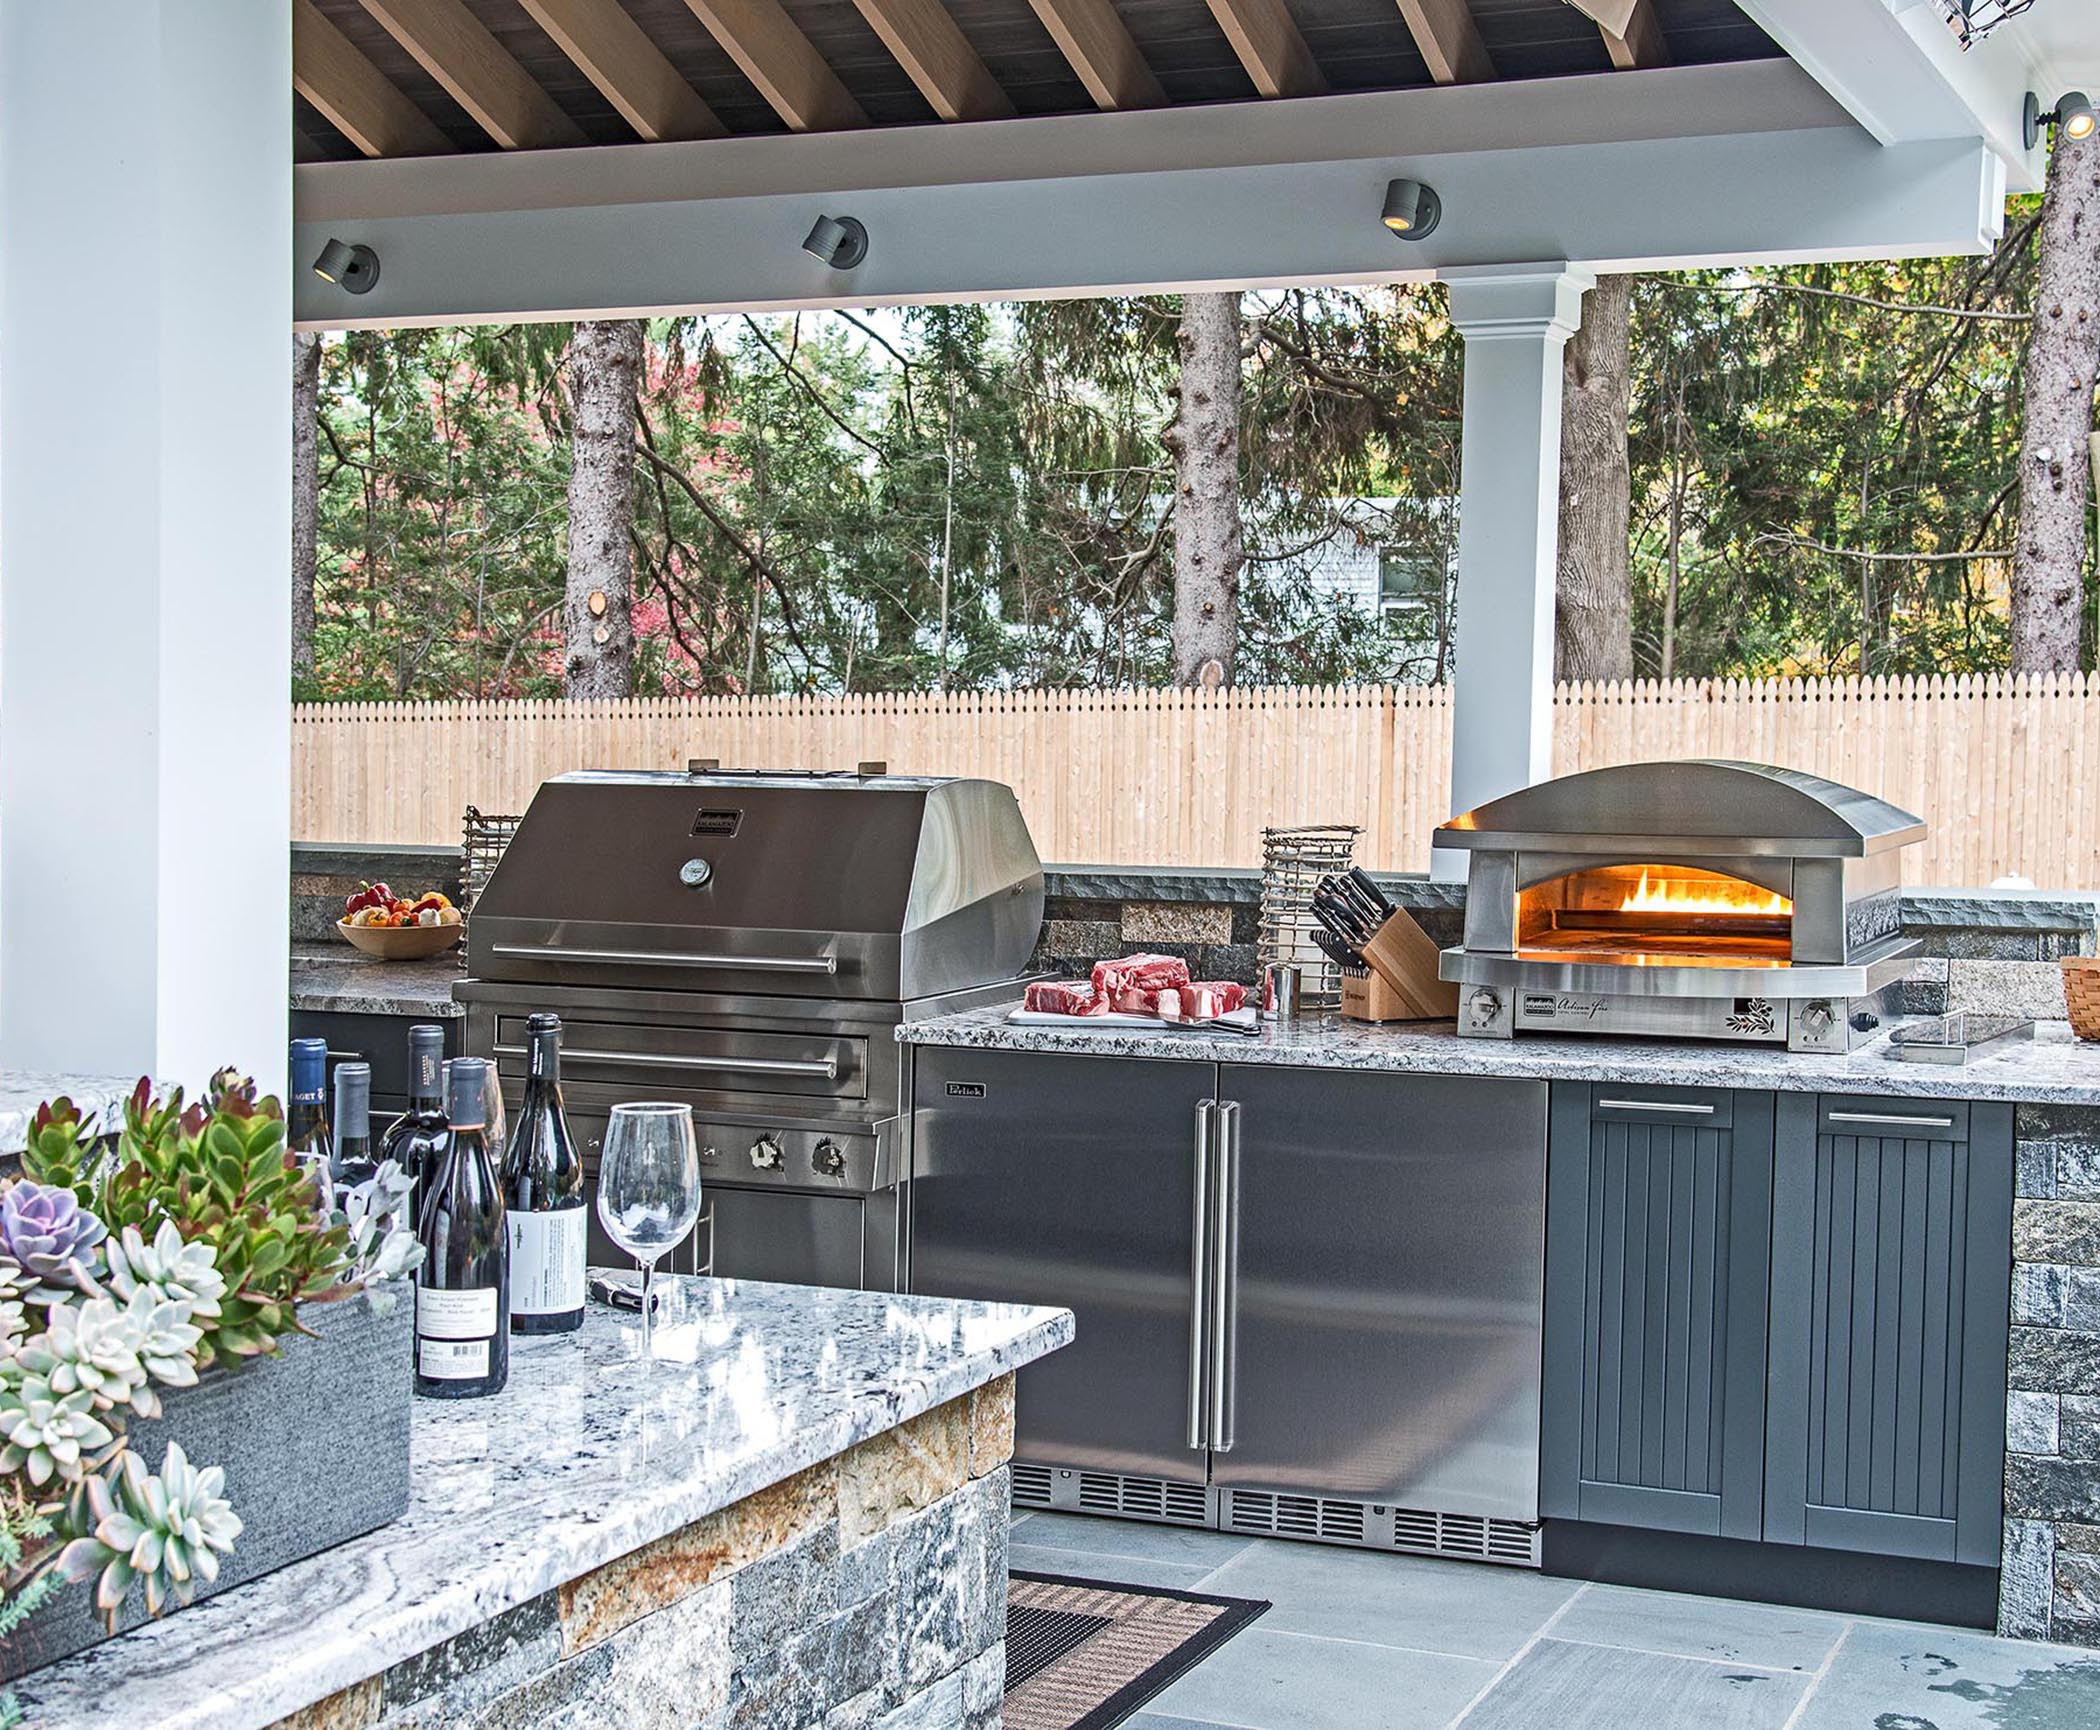 Outdoor Kitchen for Your Patio - Design Build Planners